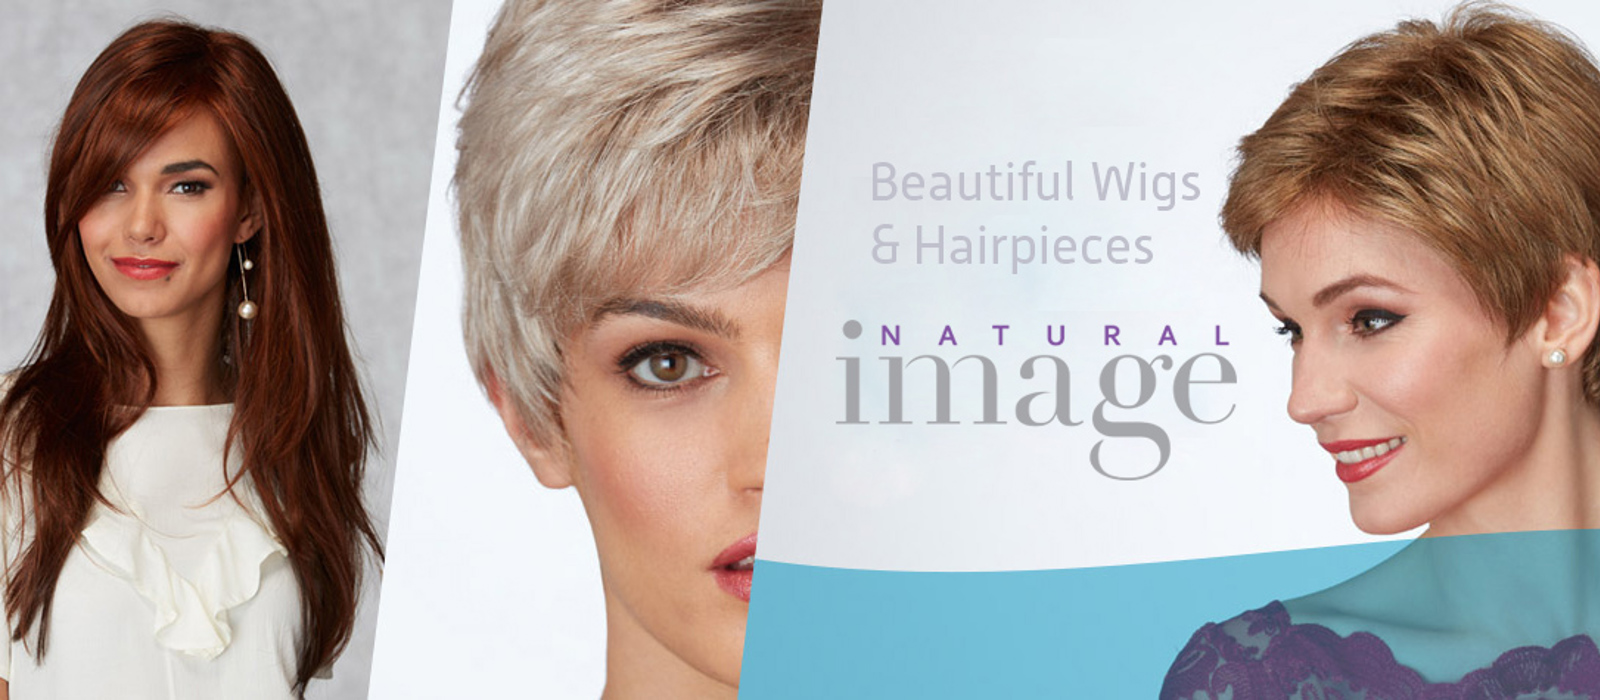 [AD] Natural Image Wigs